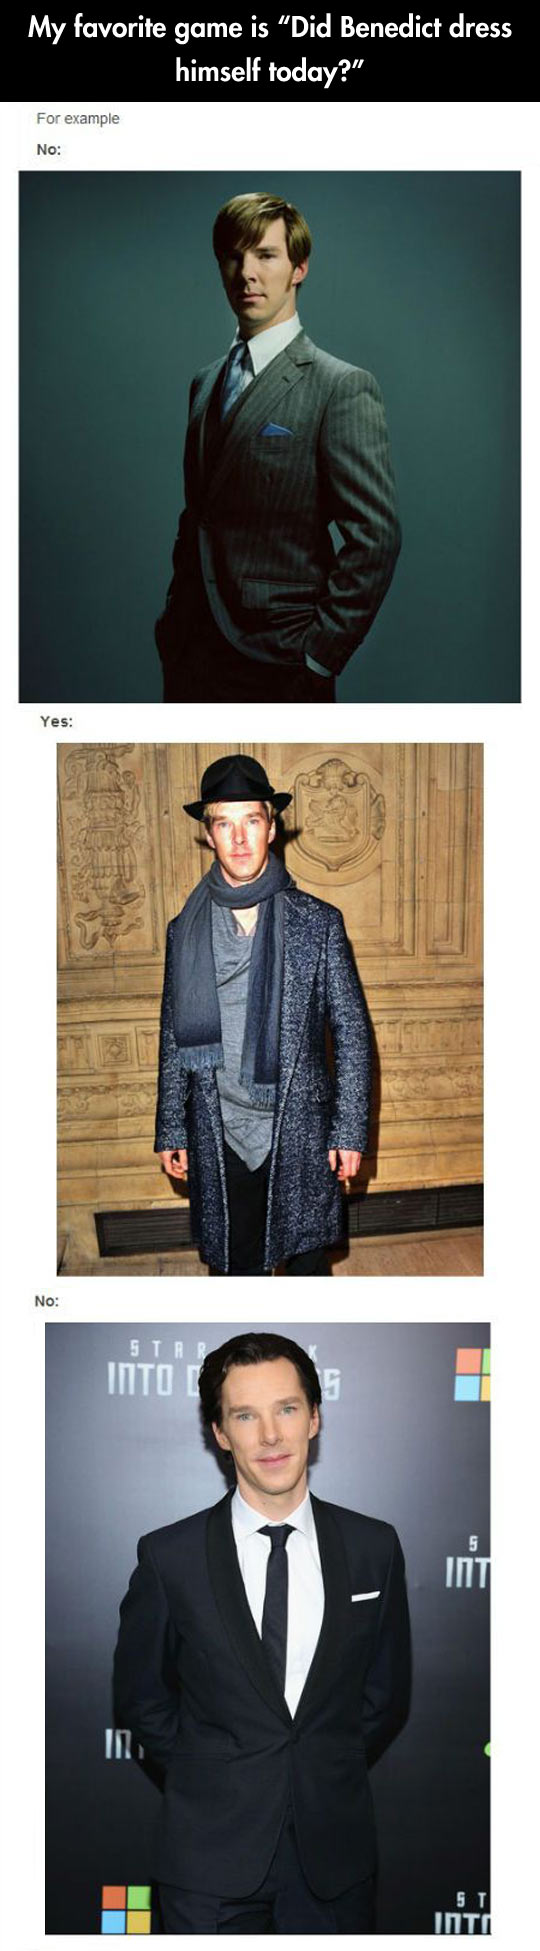 Did Benedict dress himself today?